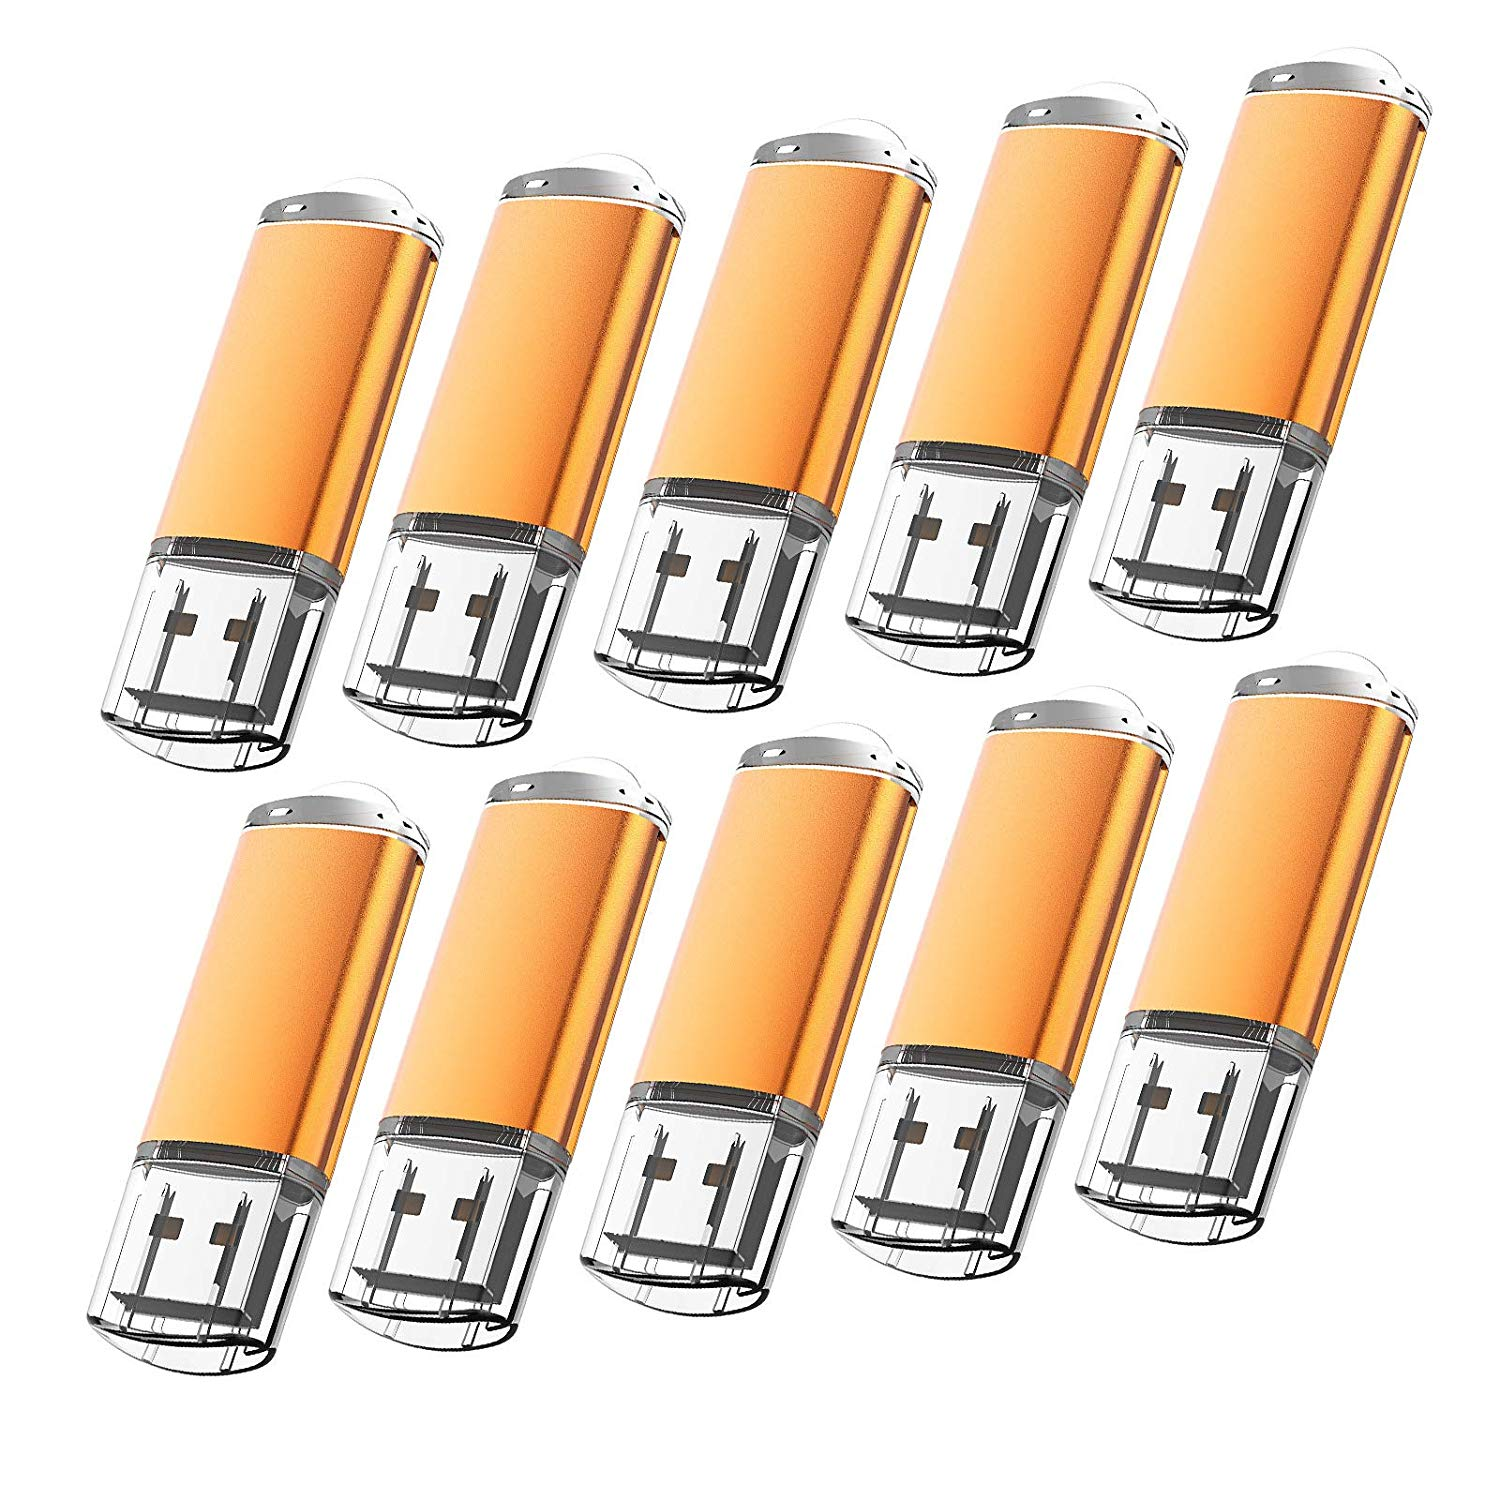 KOOTION 10Pack 8GB USB 2.0 Flash Drives Memory Stick Thumb Drive, Orange